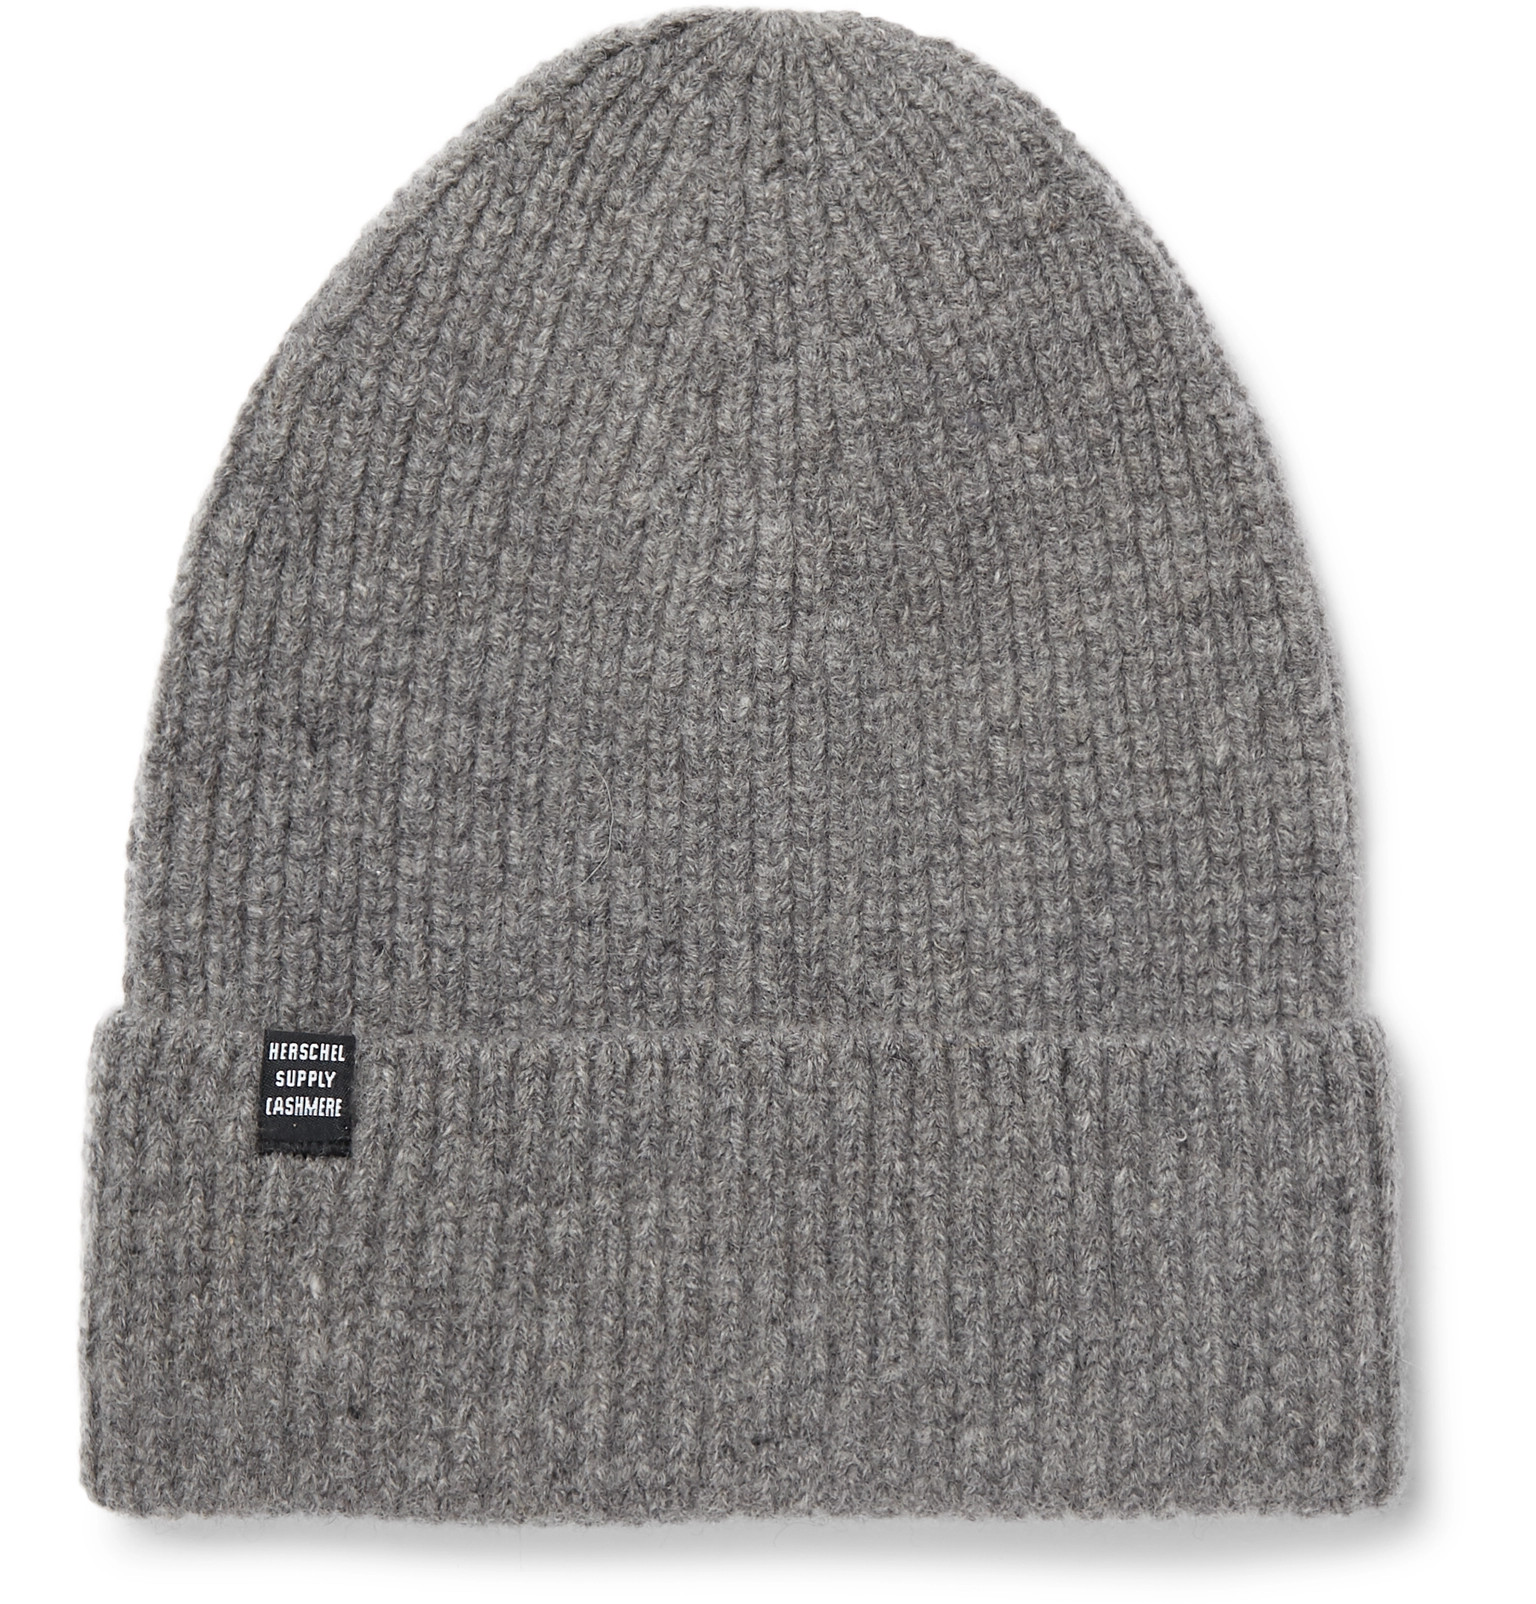 Herschel Supply Co - Cardiff Ribbed Cashmere and Wool-Blend Beanie 73fd87fa2a62